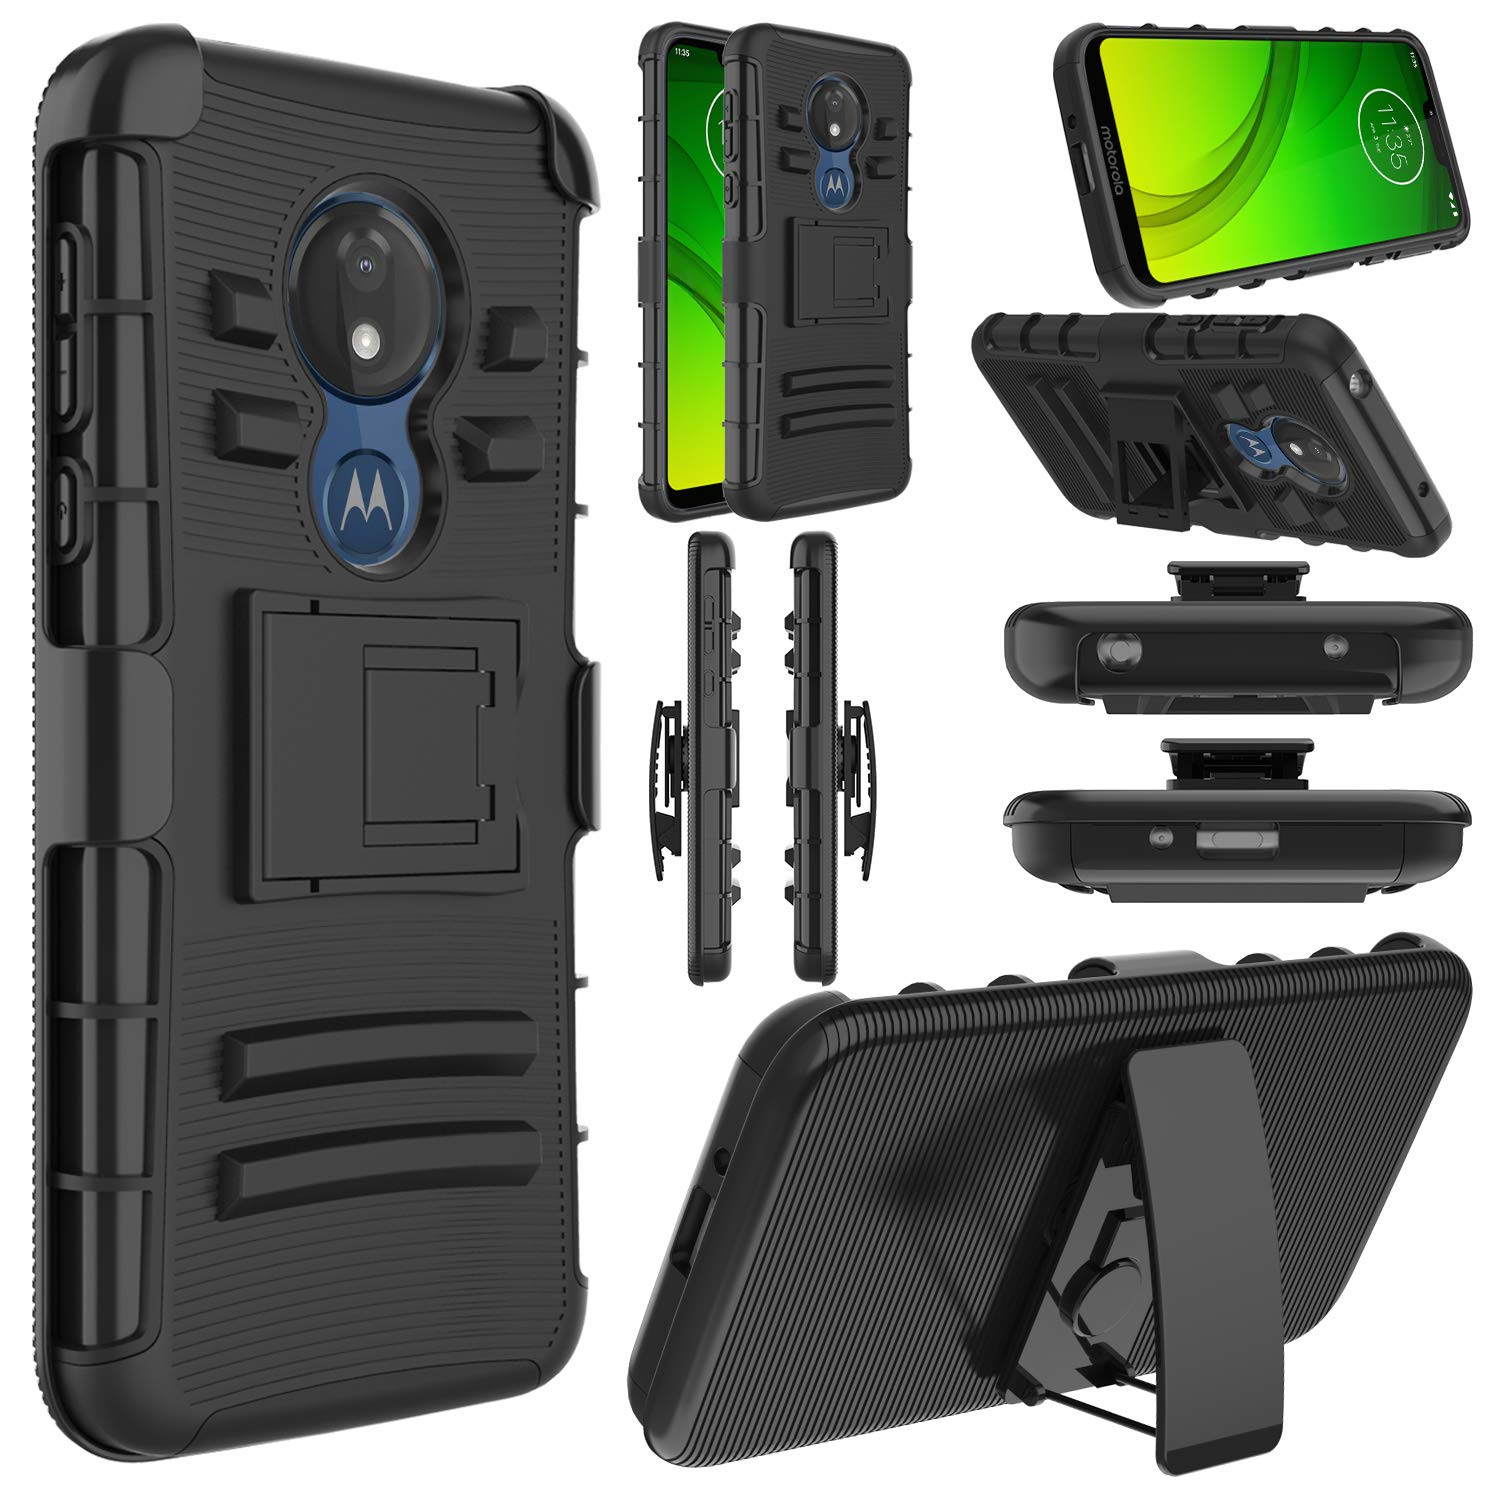 Funda Para Moto G7 Power Con Pie Elegant Choise (7pjwqyt7)